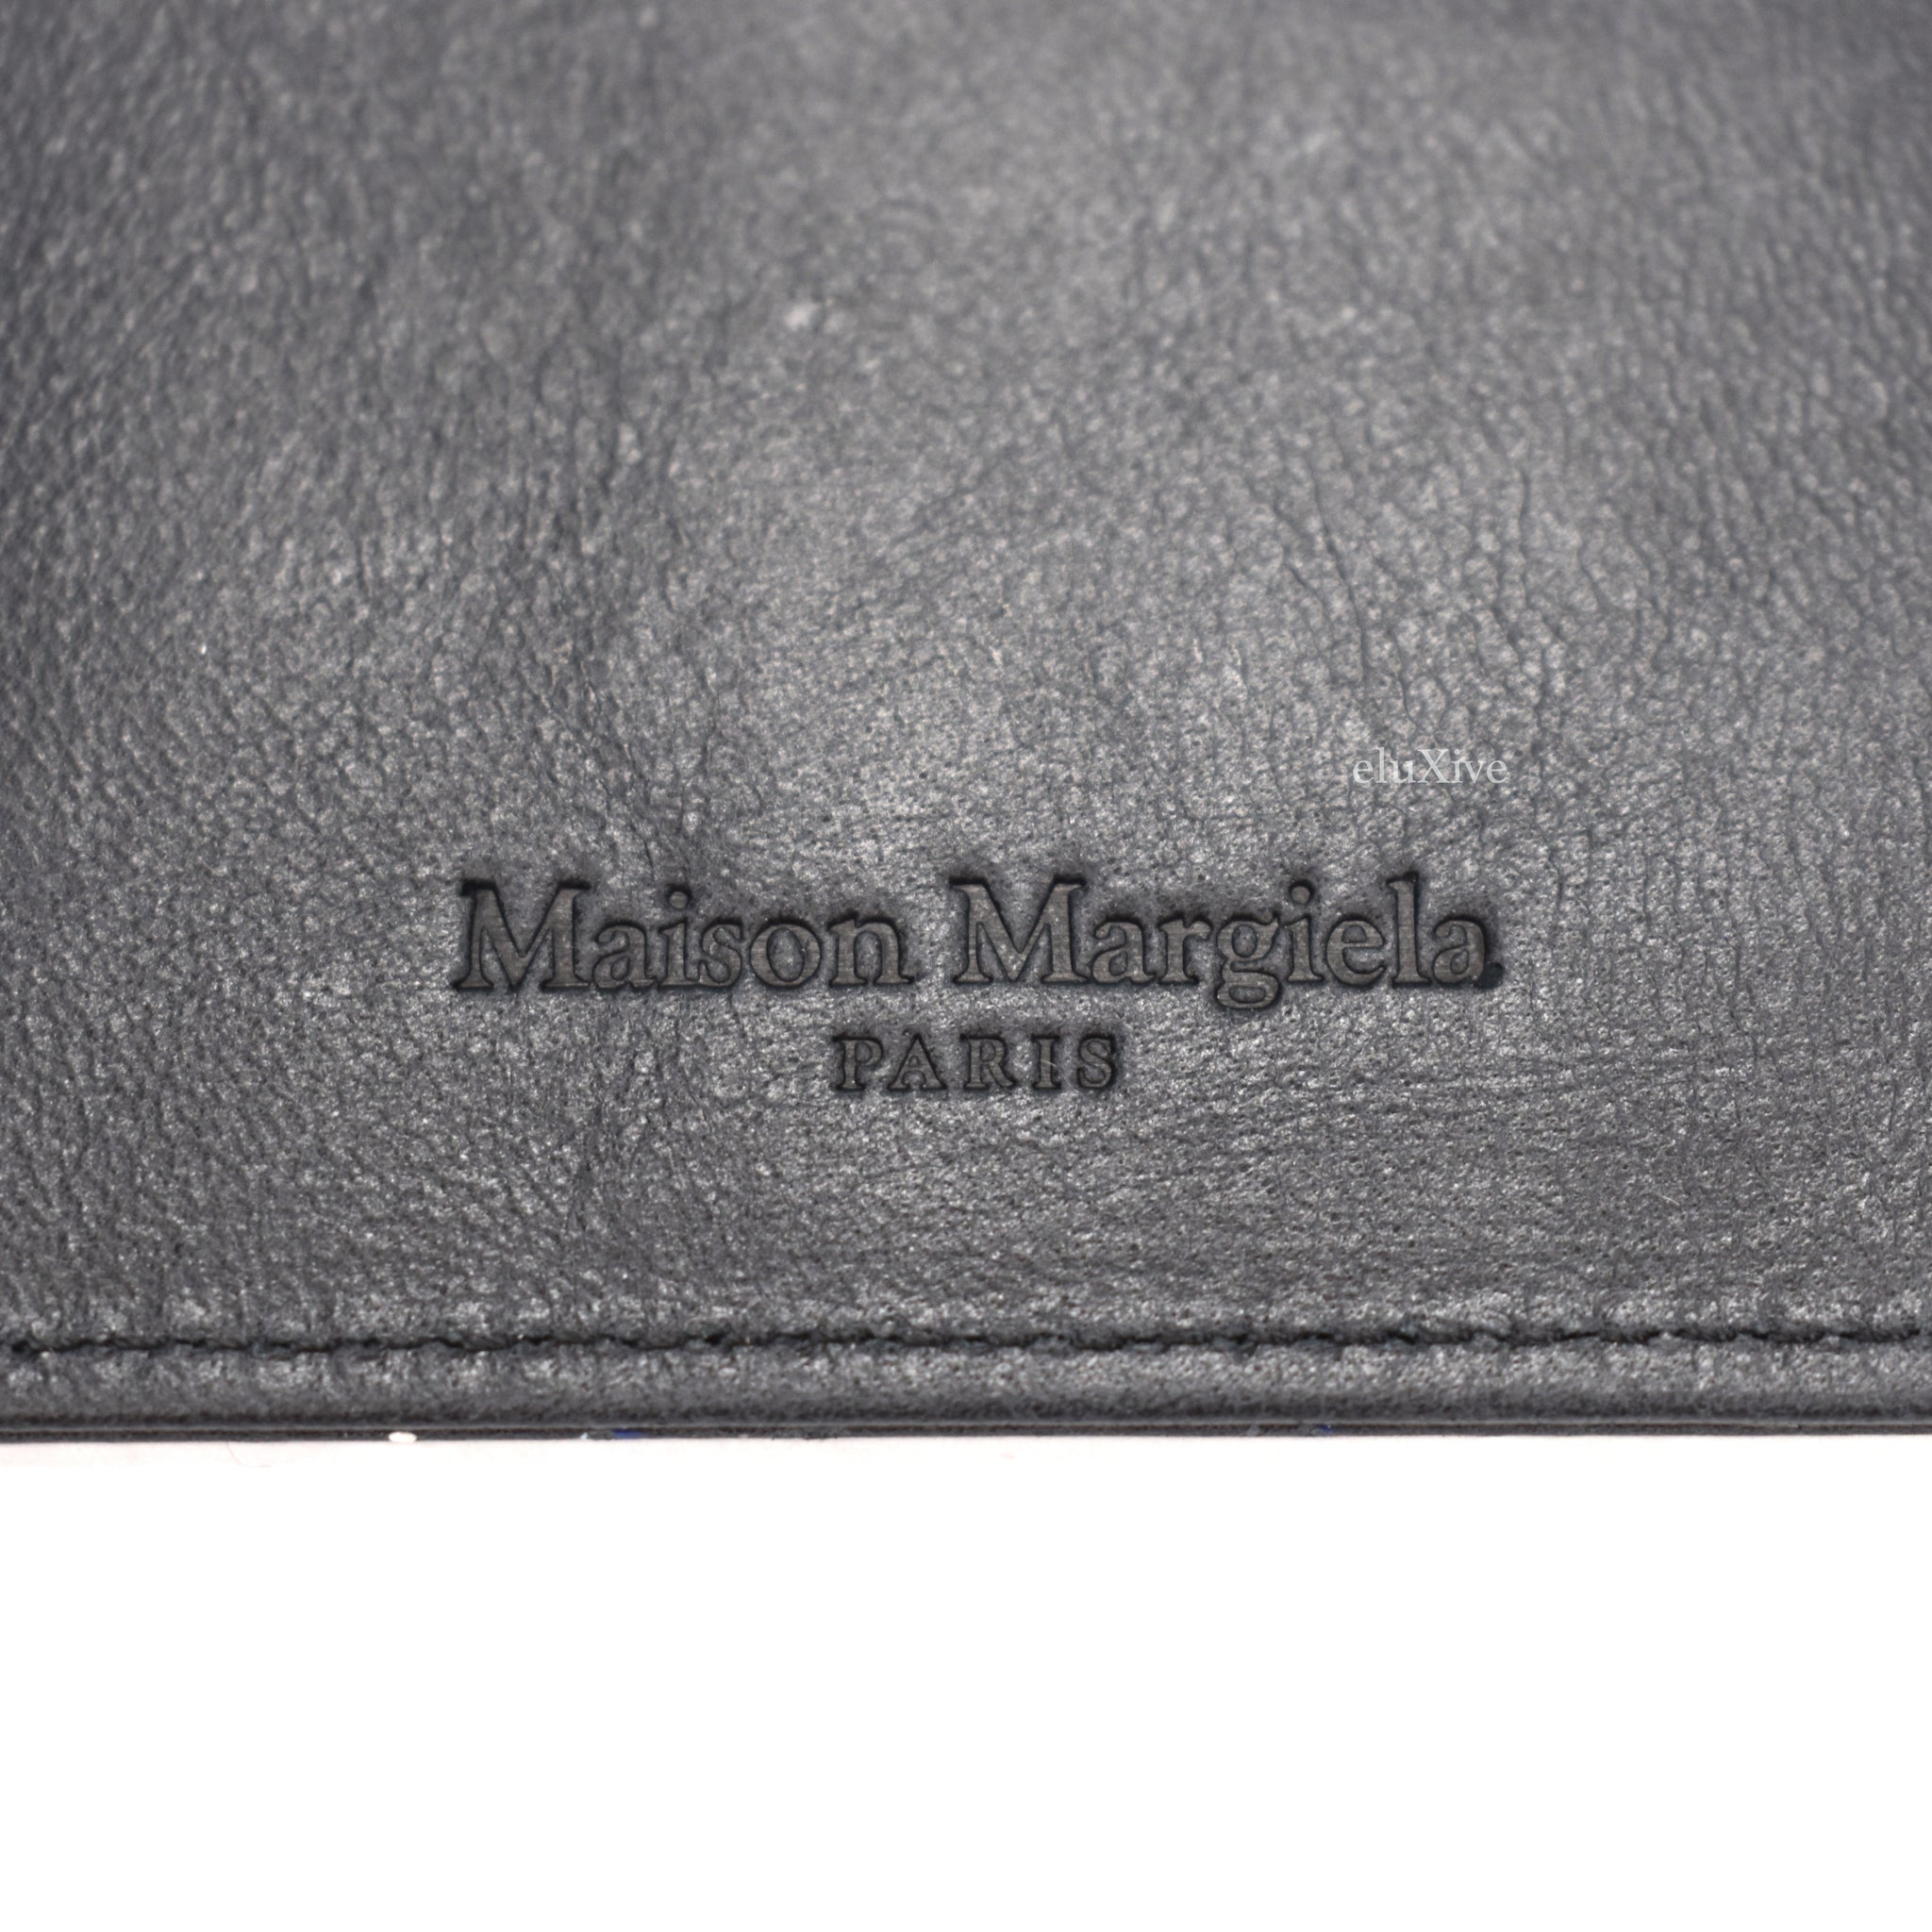 Maison Margiela - Black Paint Splatter Card Holder